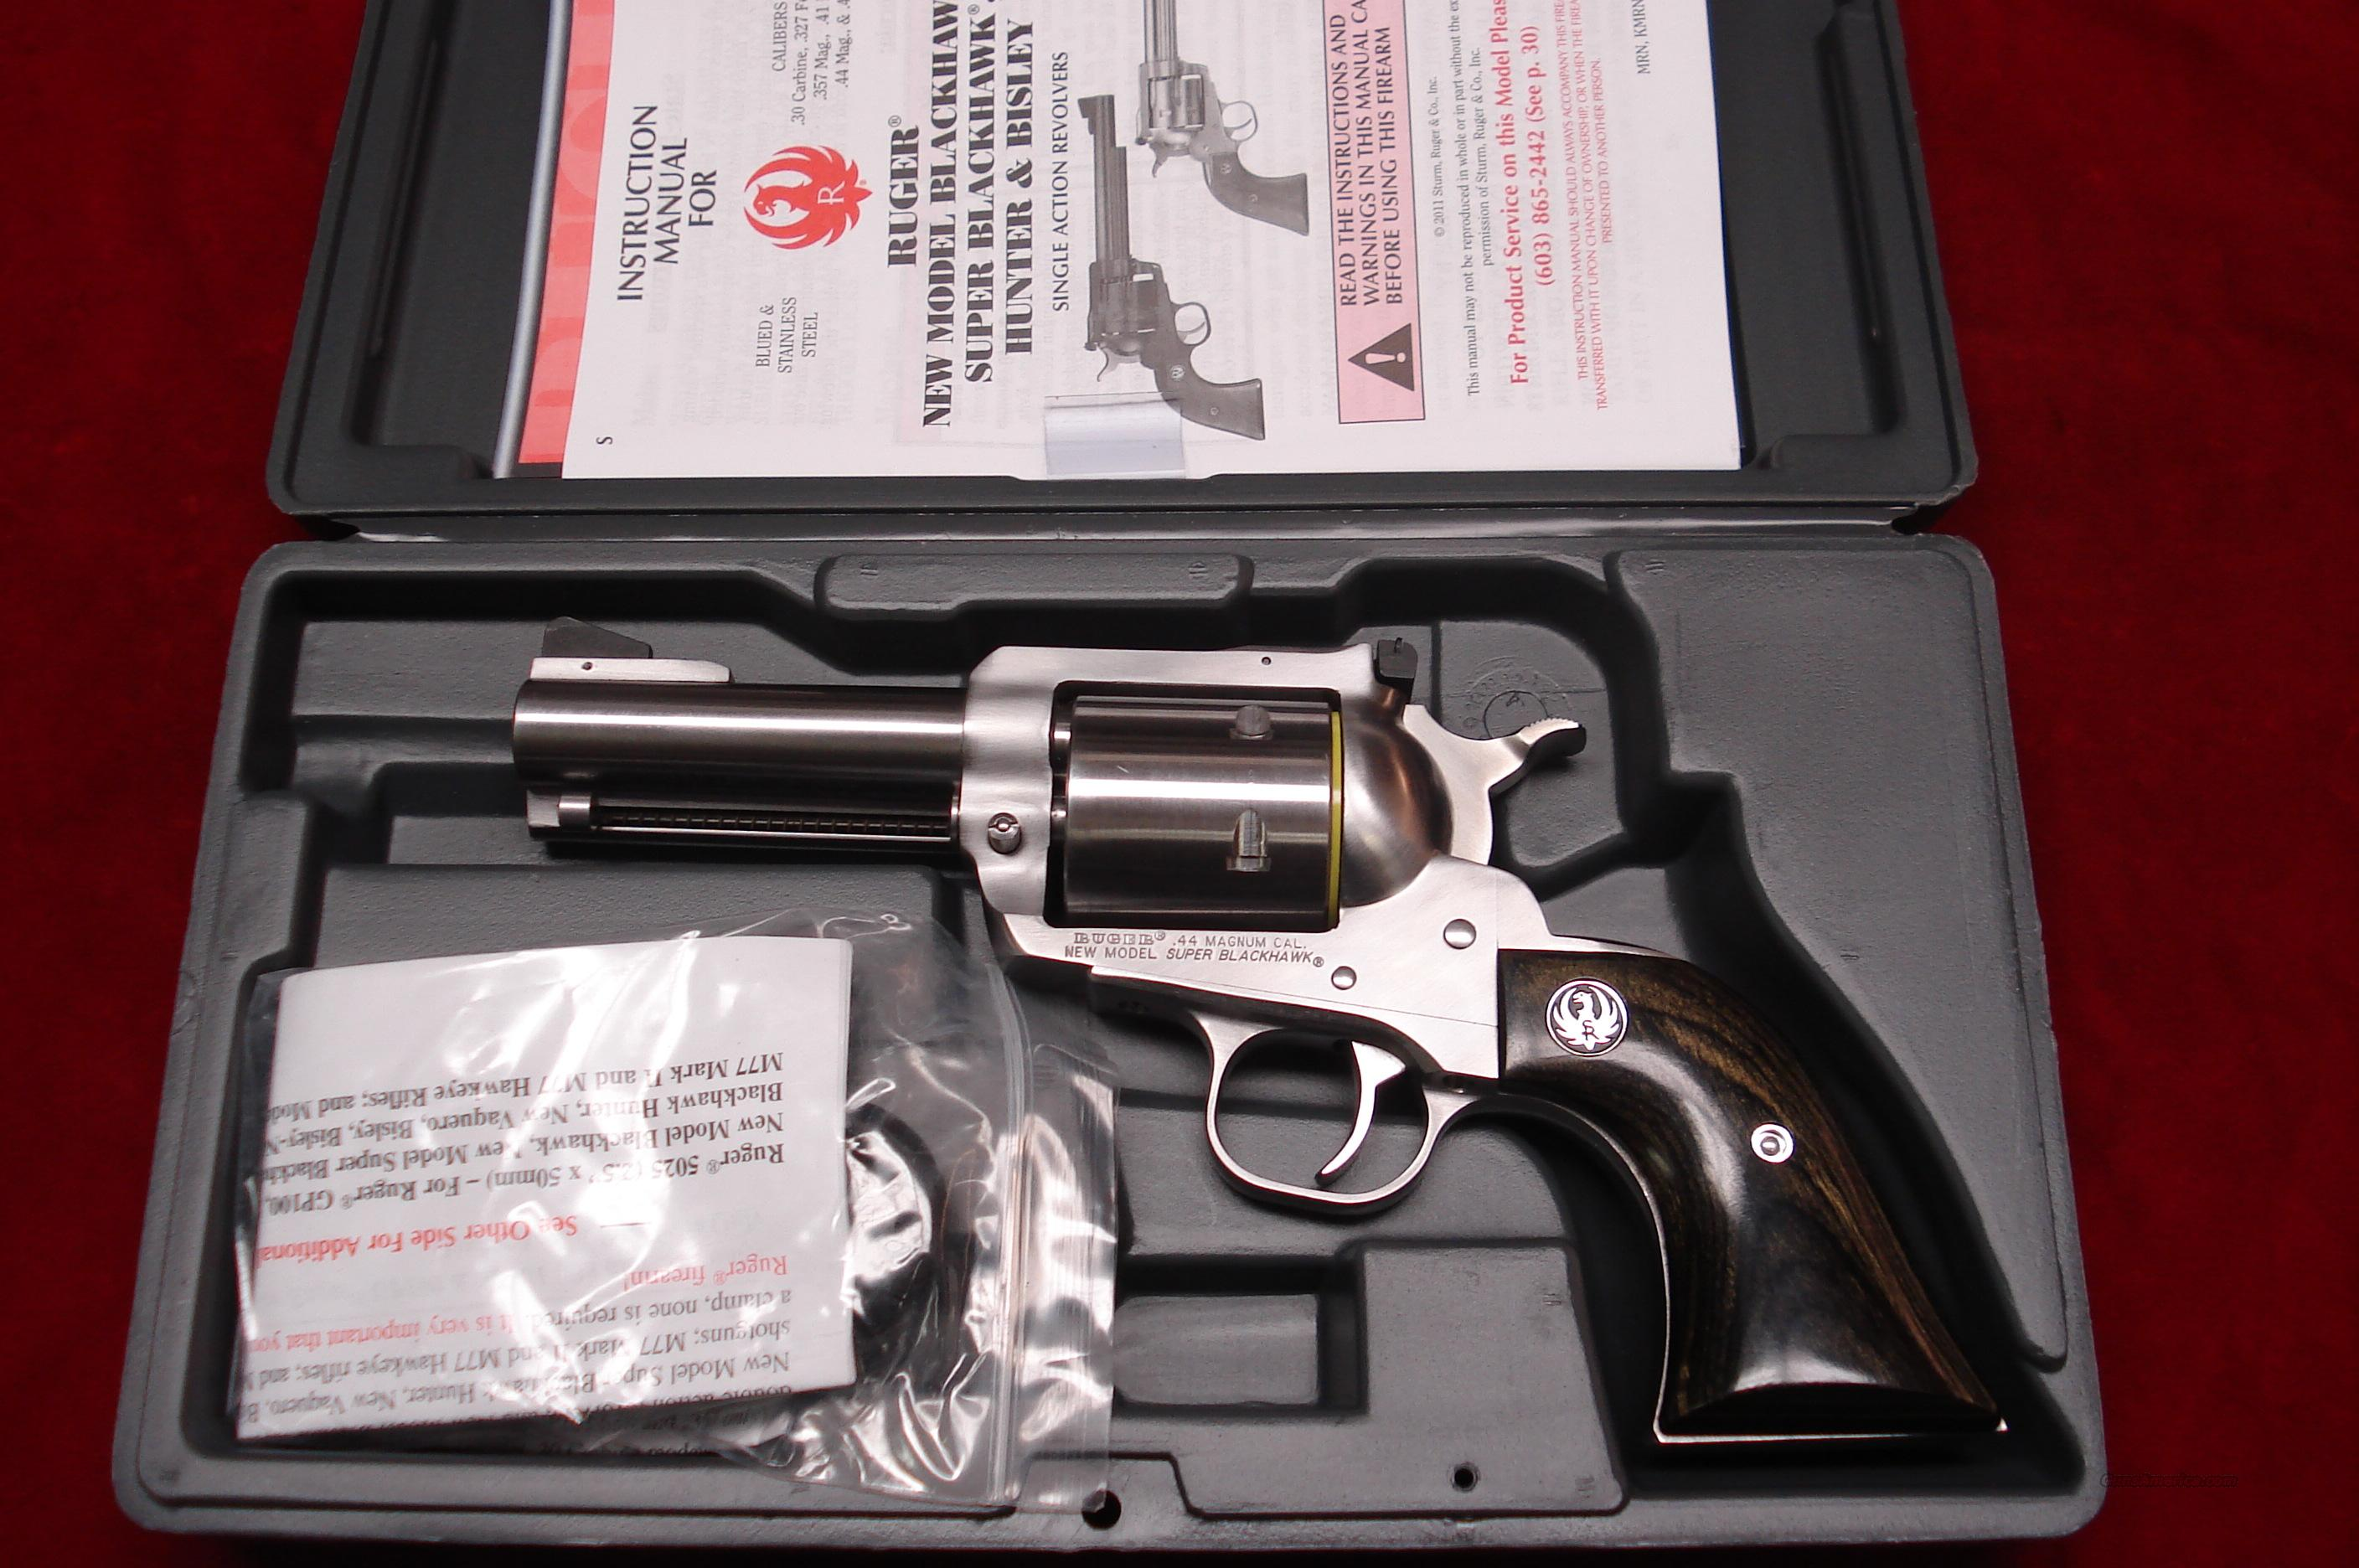 "RUGER SUPER BLACKHAWK 44MAG 3.75"" STAINLESS NEW (KS-43N)  (00817)  Guns > Pistols > Ruger Single Action Revolvers > Blackhawk Type"